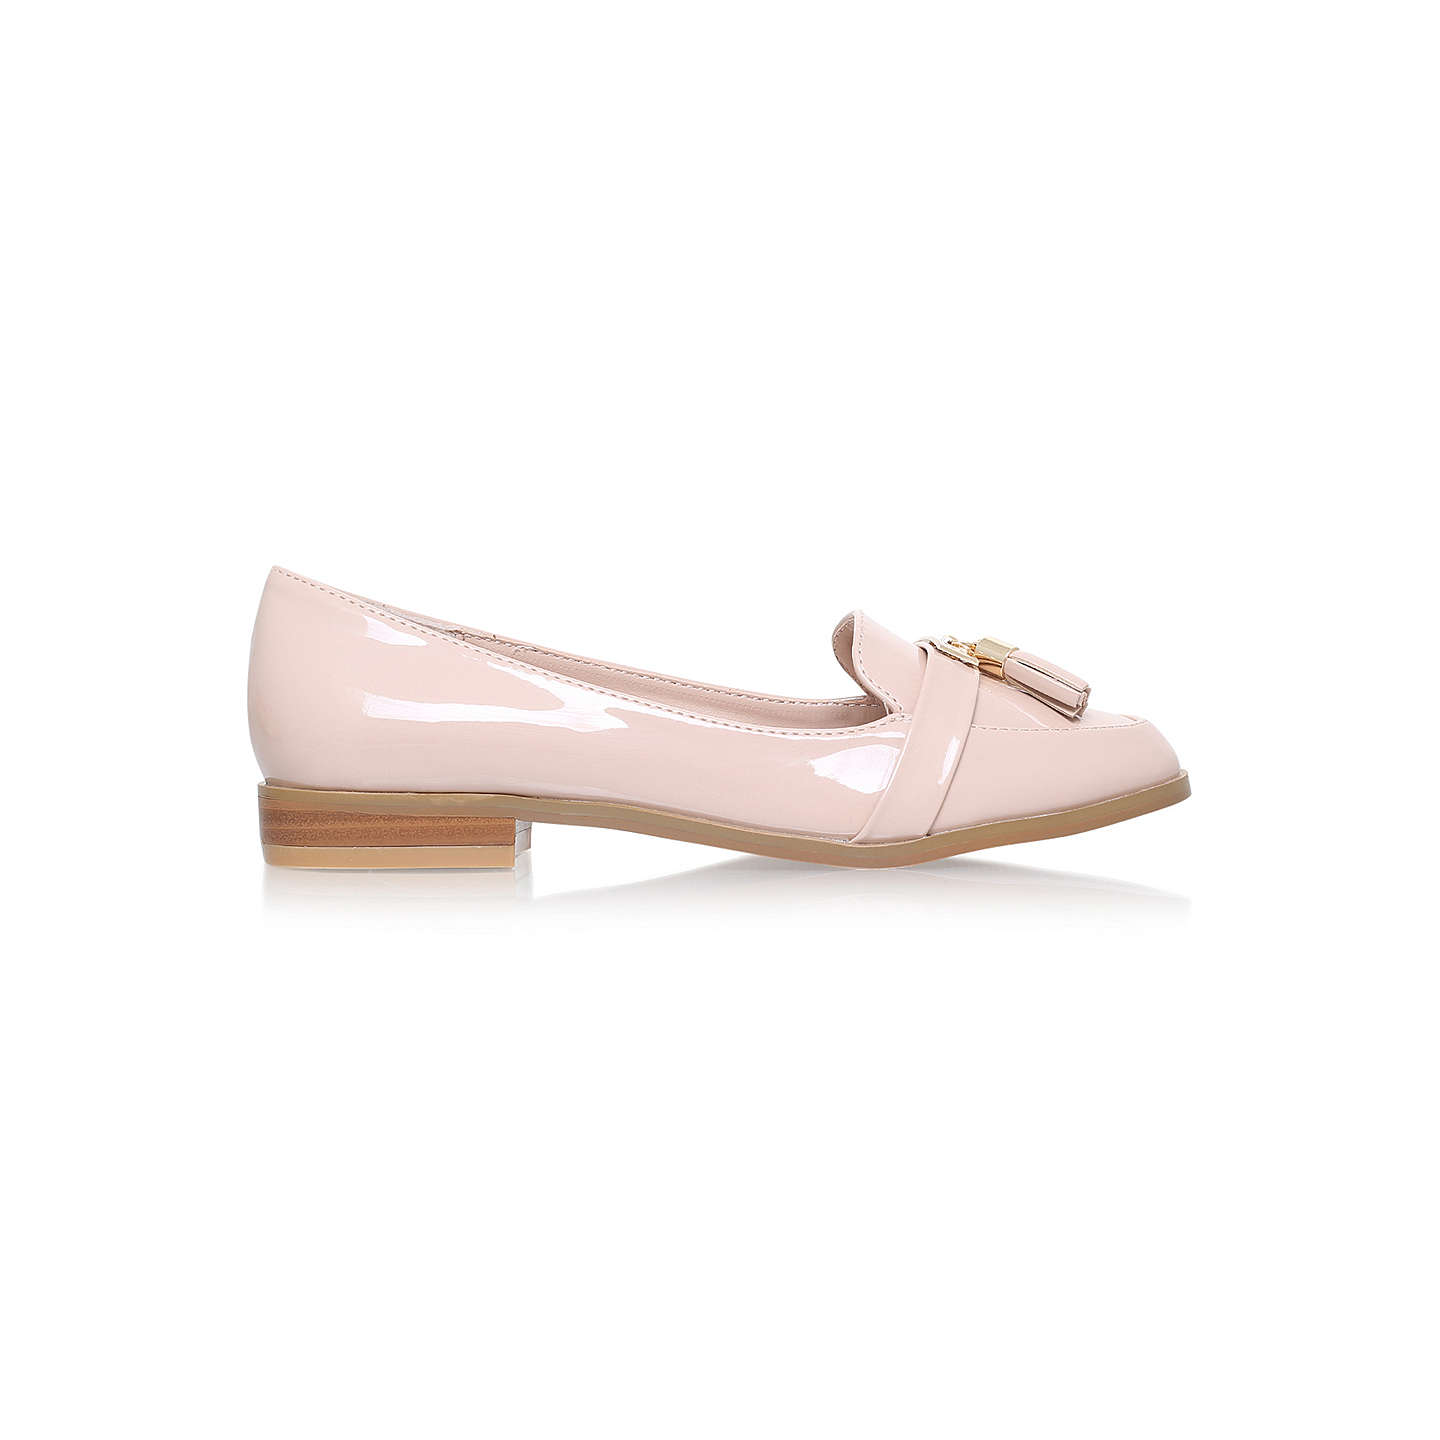 BuyMiss KG Nadia 2 Loafers, Nude, 3 Online at johnlewis.com